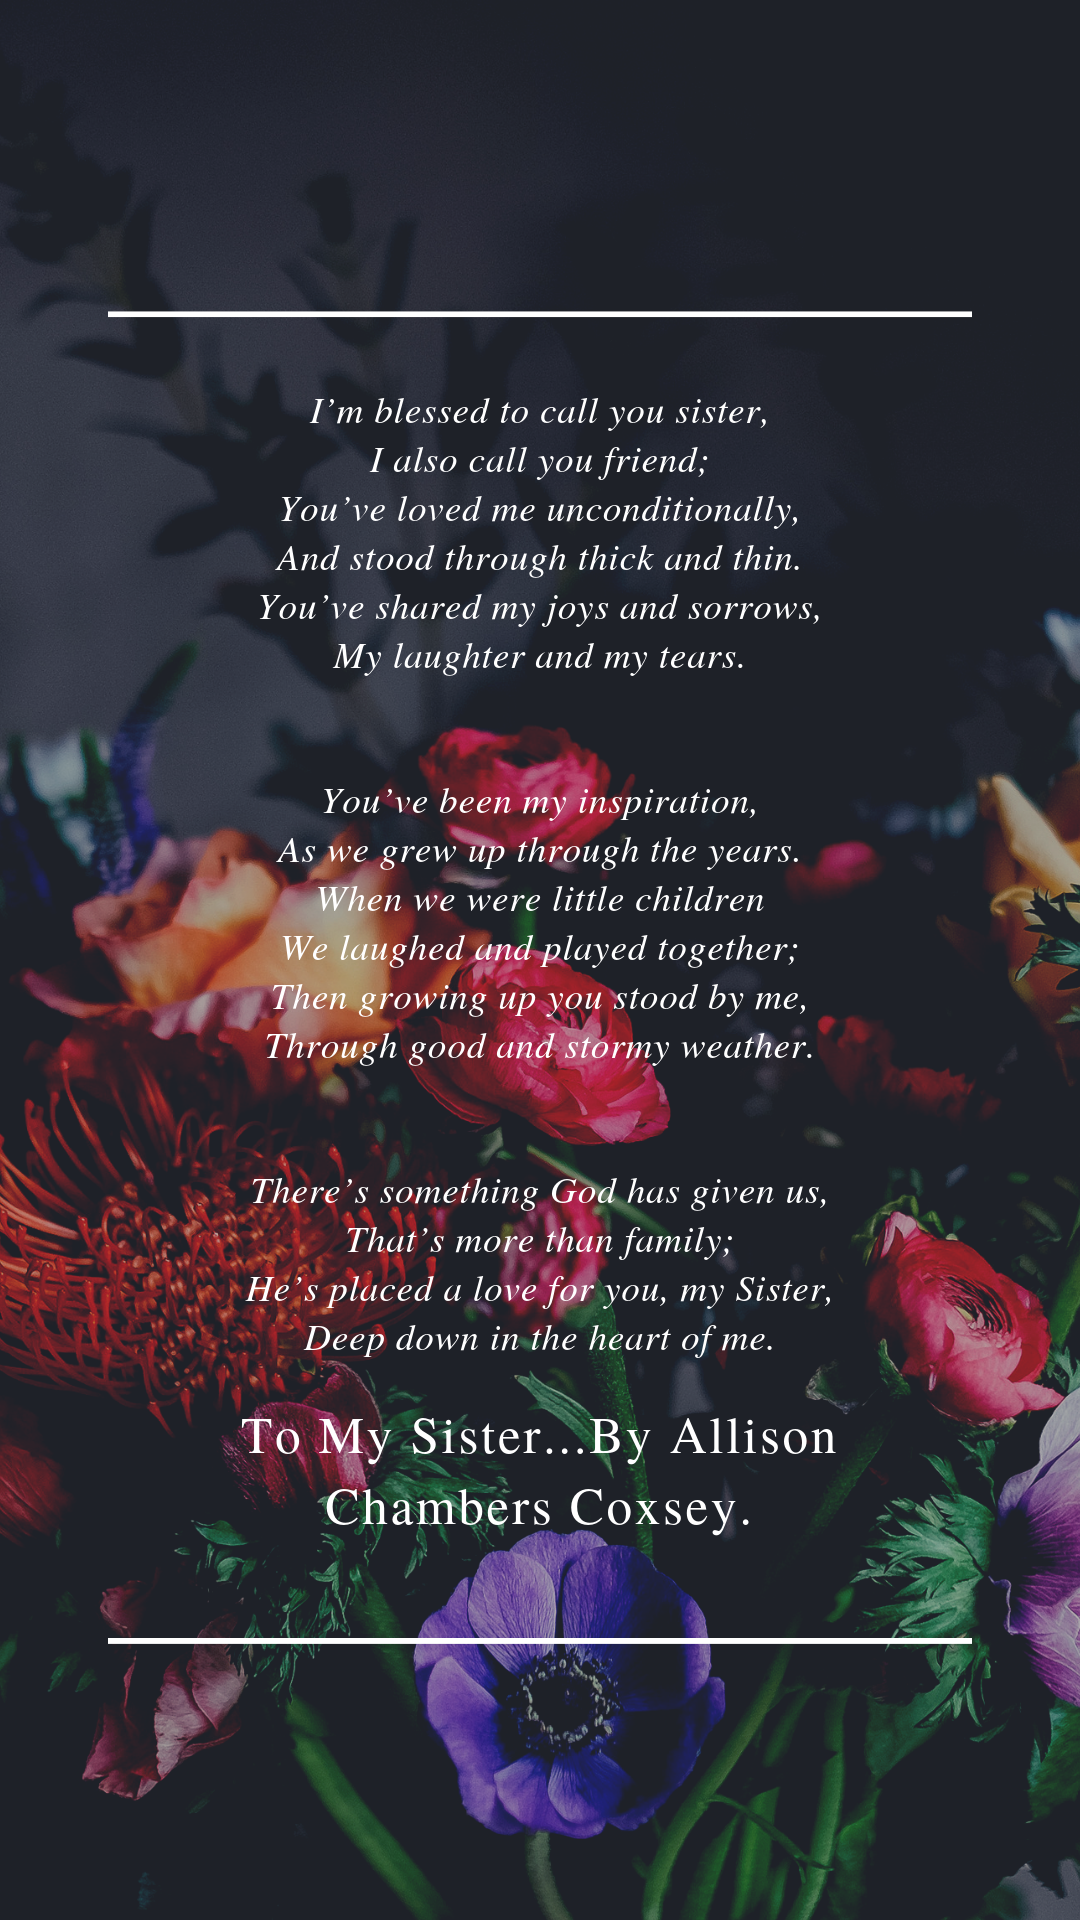 To My Sister...By Allison Chambers Coxsey - Eastern Memorials